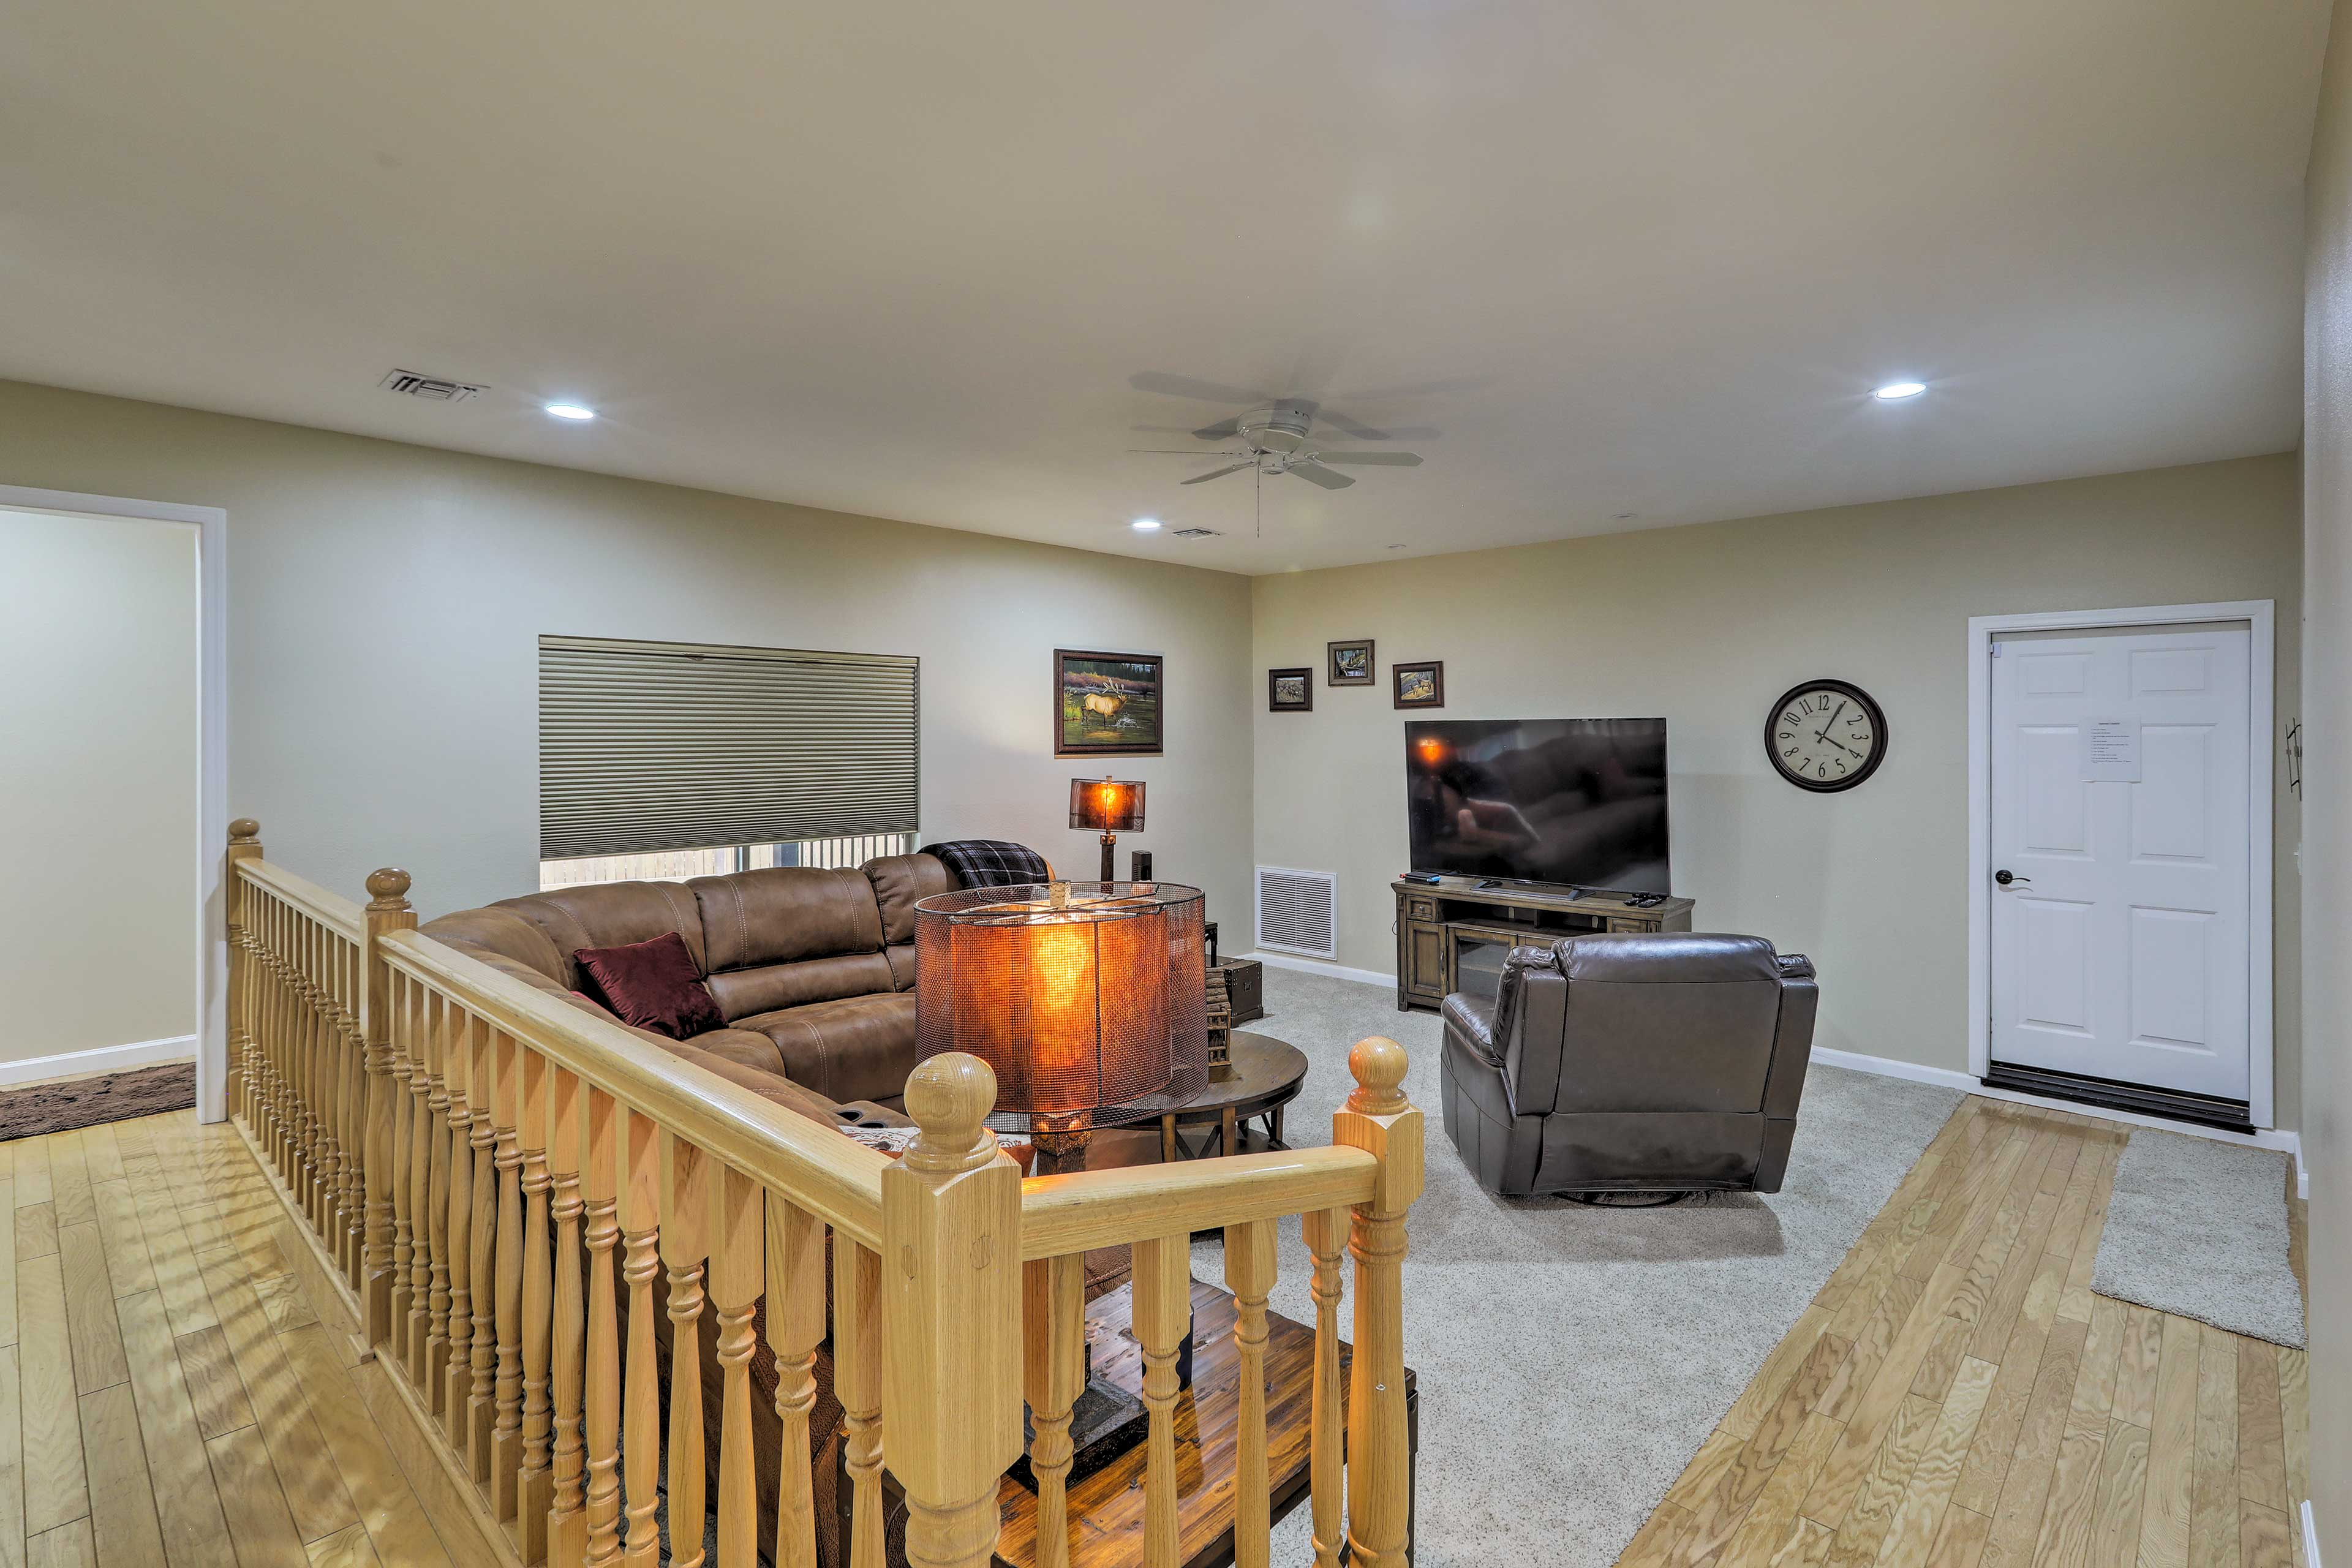 Turn on a new movie using the flat-screen cable TV in this living space.